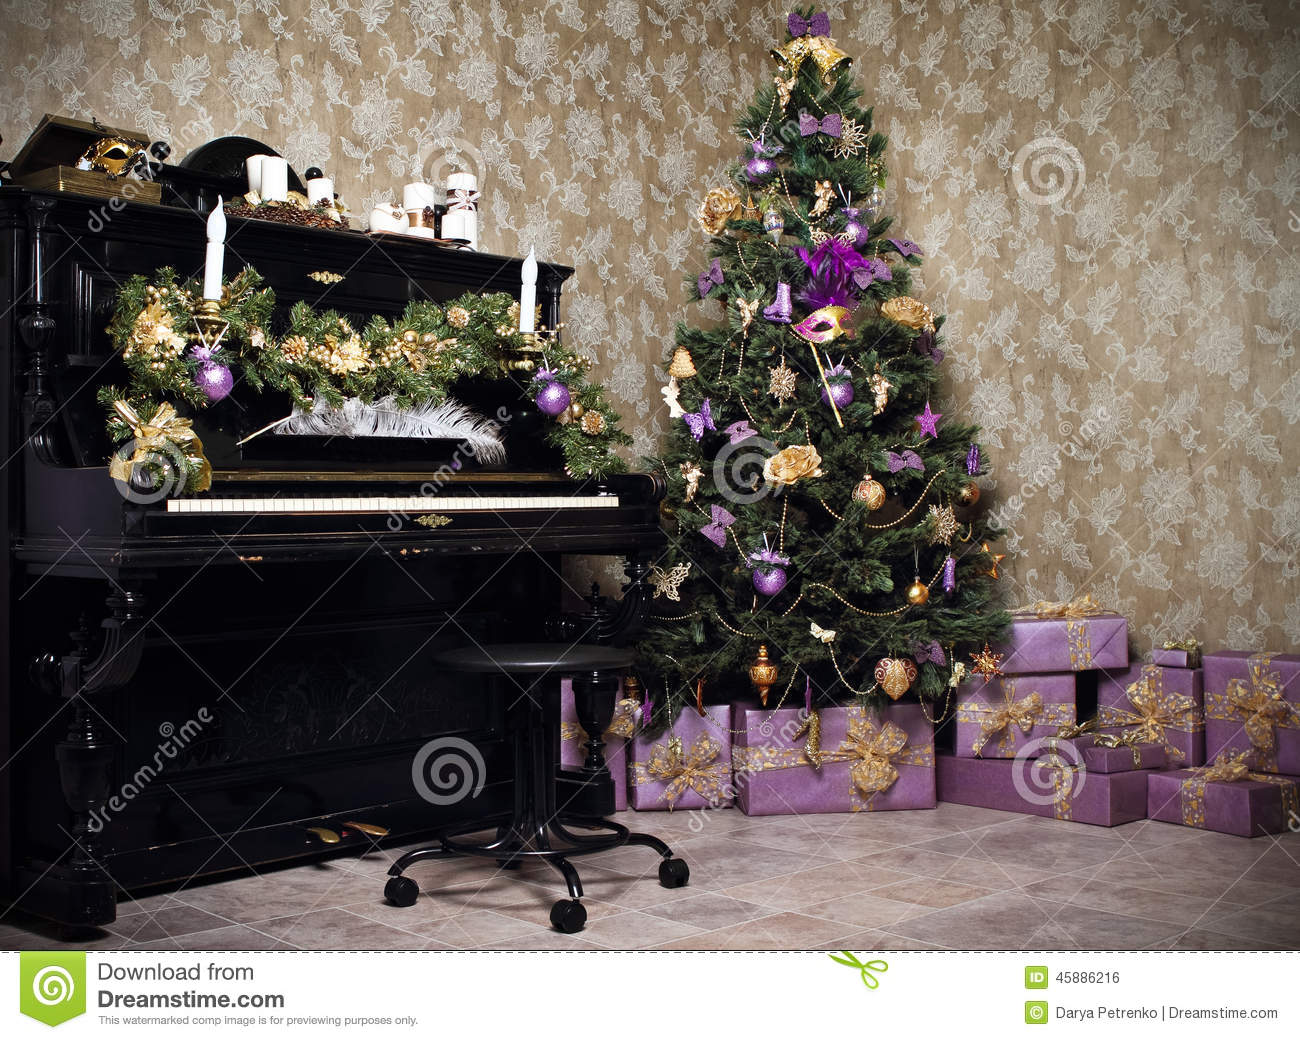 free rocking chair plans high seat chairs vintage room with a piano, christmas tree, candles, gifts or pr stock photo - image: 45886216